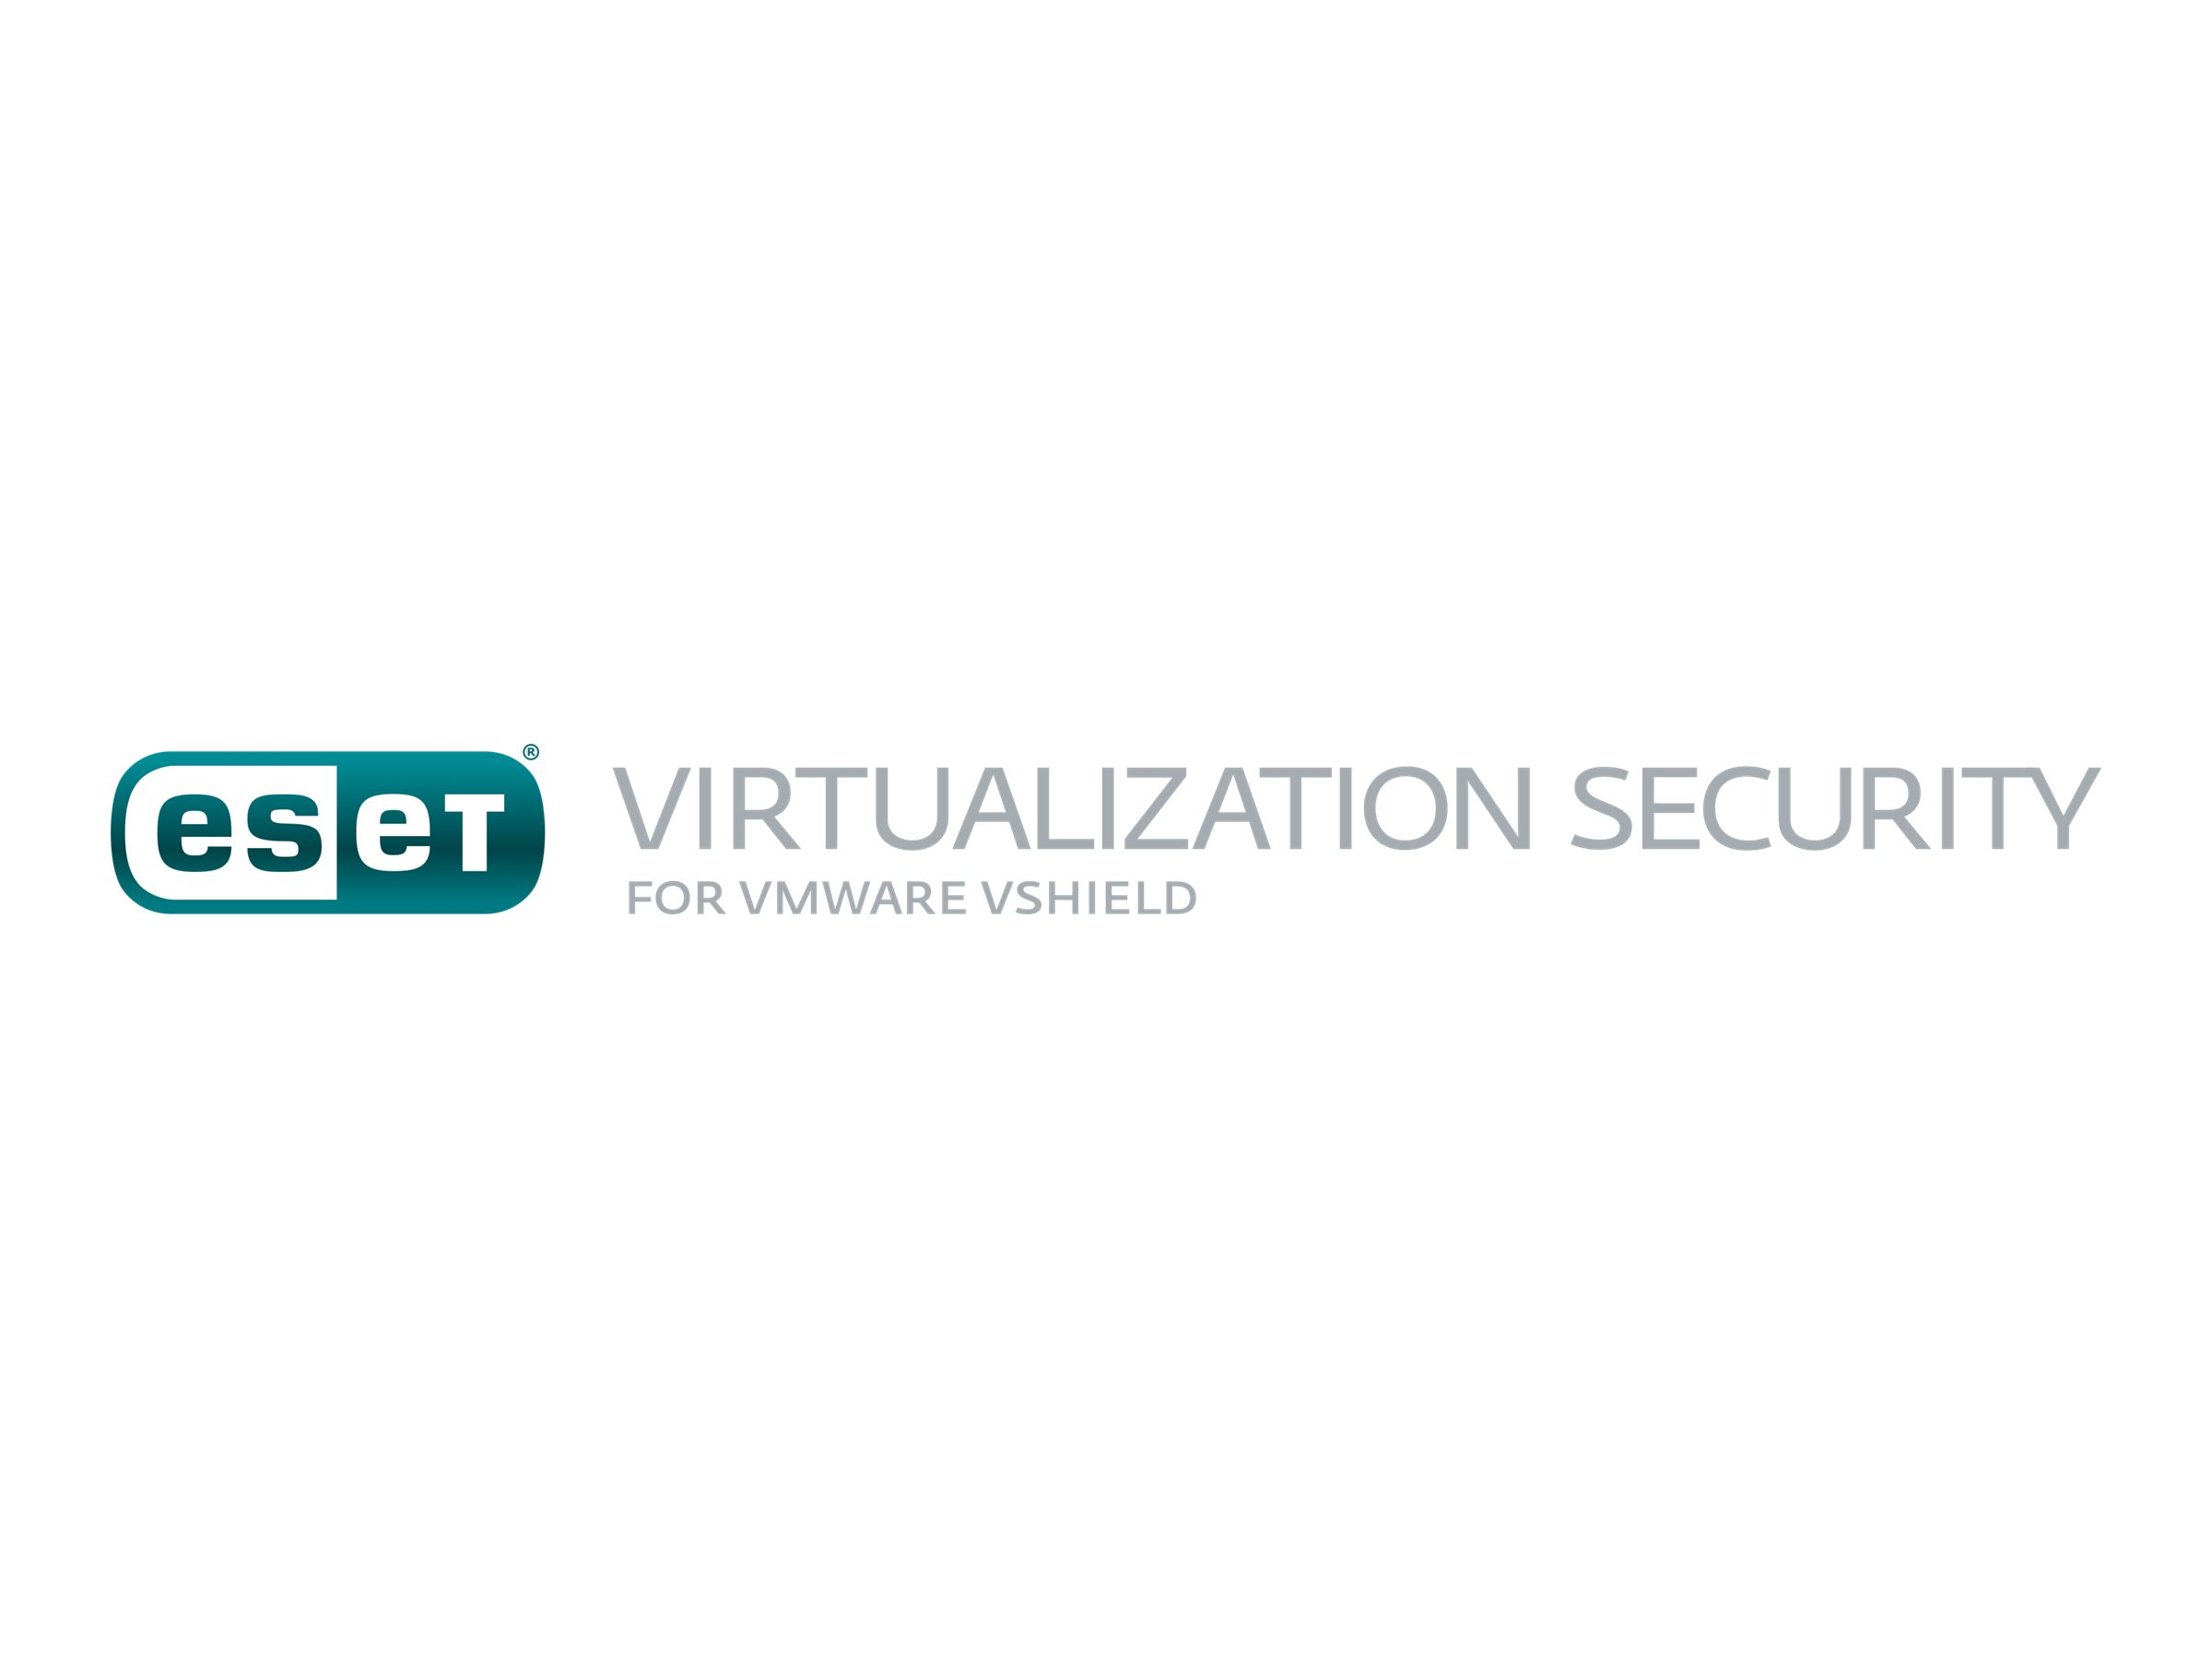 ESET Virtualization Security for VMware vShield - Erneuerung der Abonnement-Lizenz (1 Jahr) - 1 virtuelle Maschine - Volumen - 1